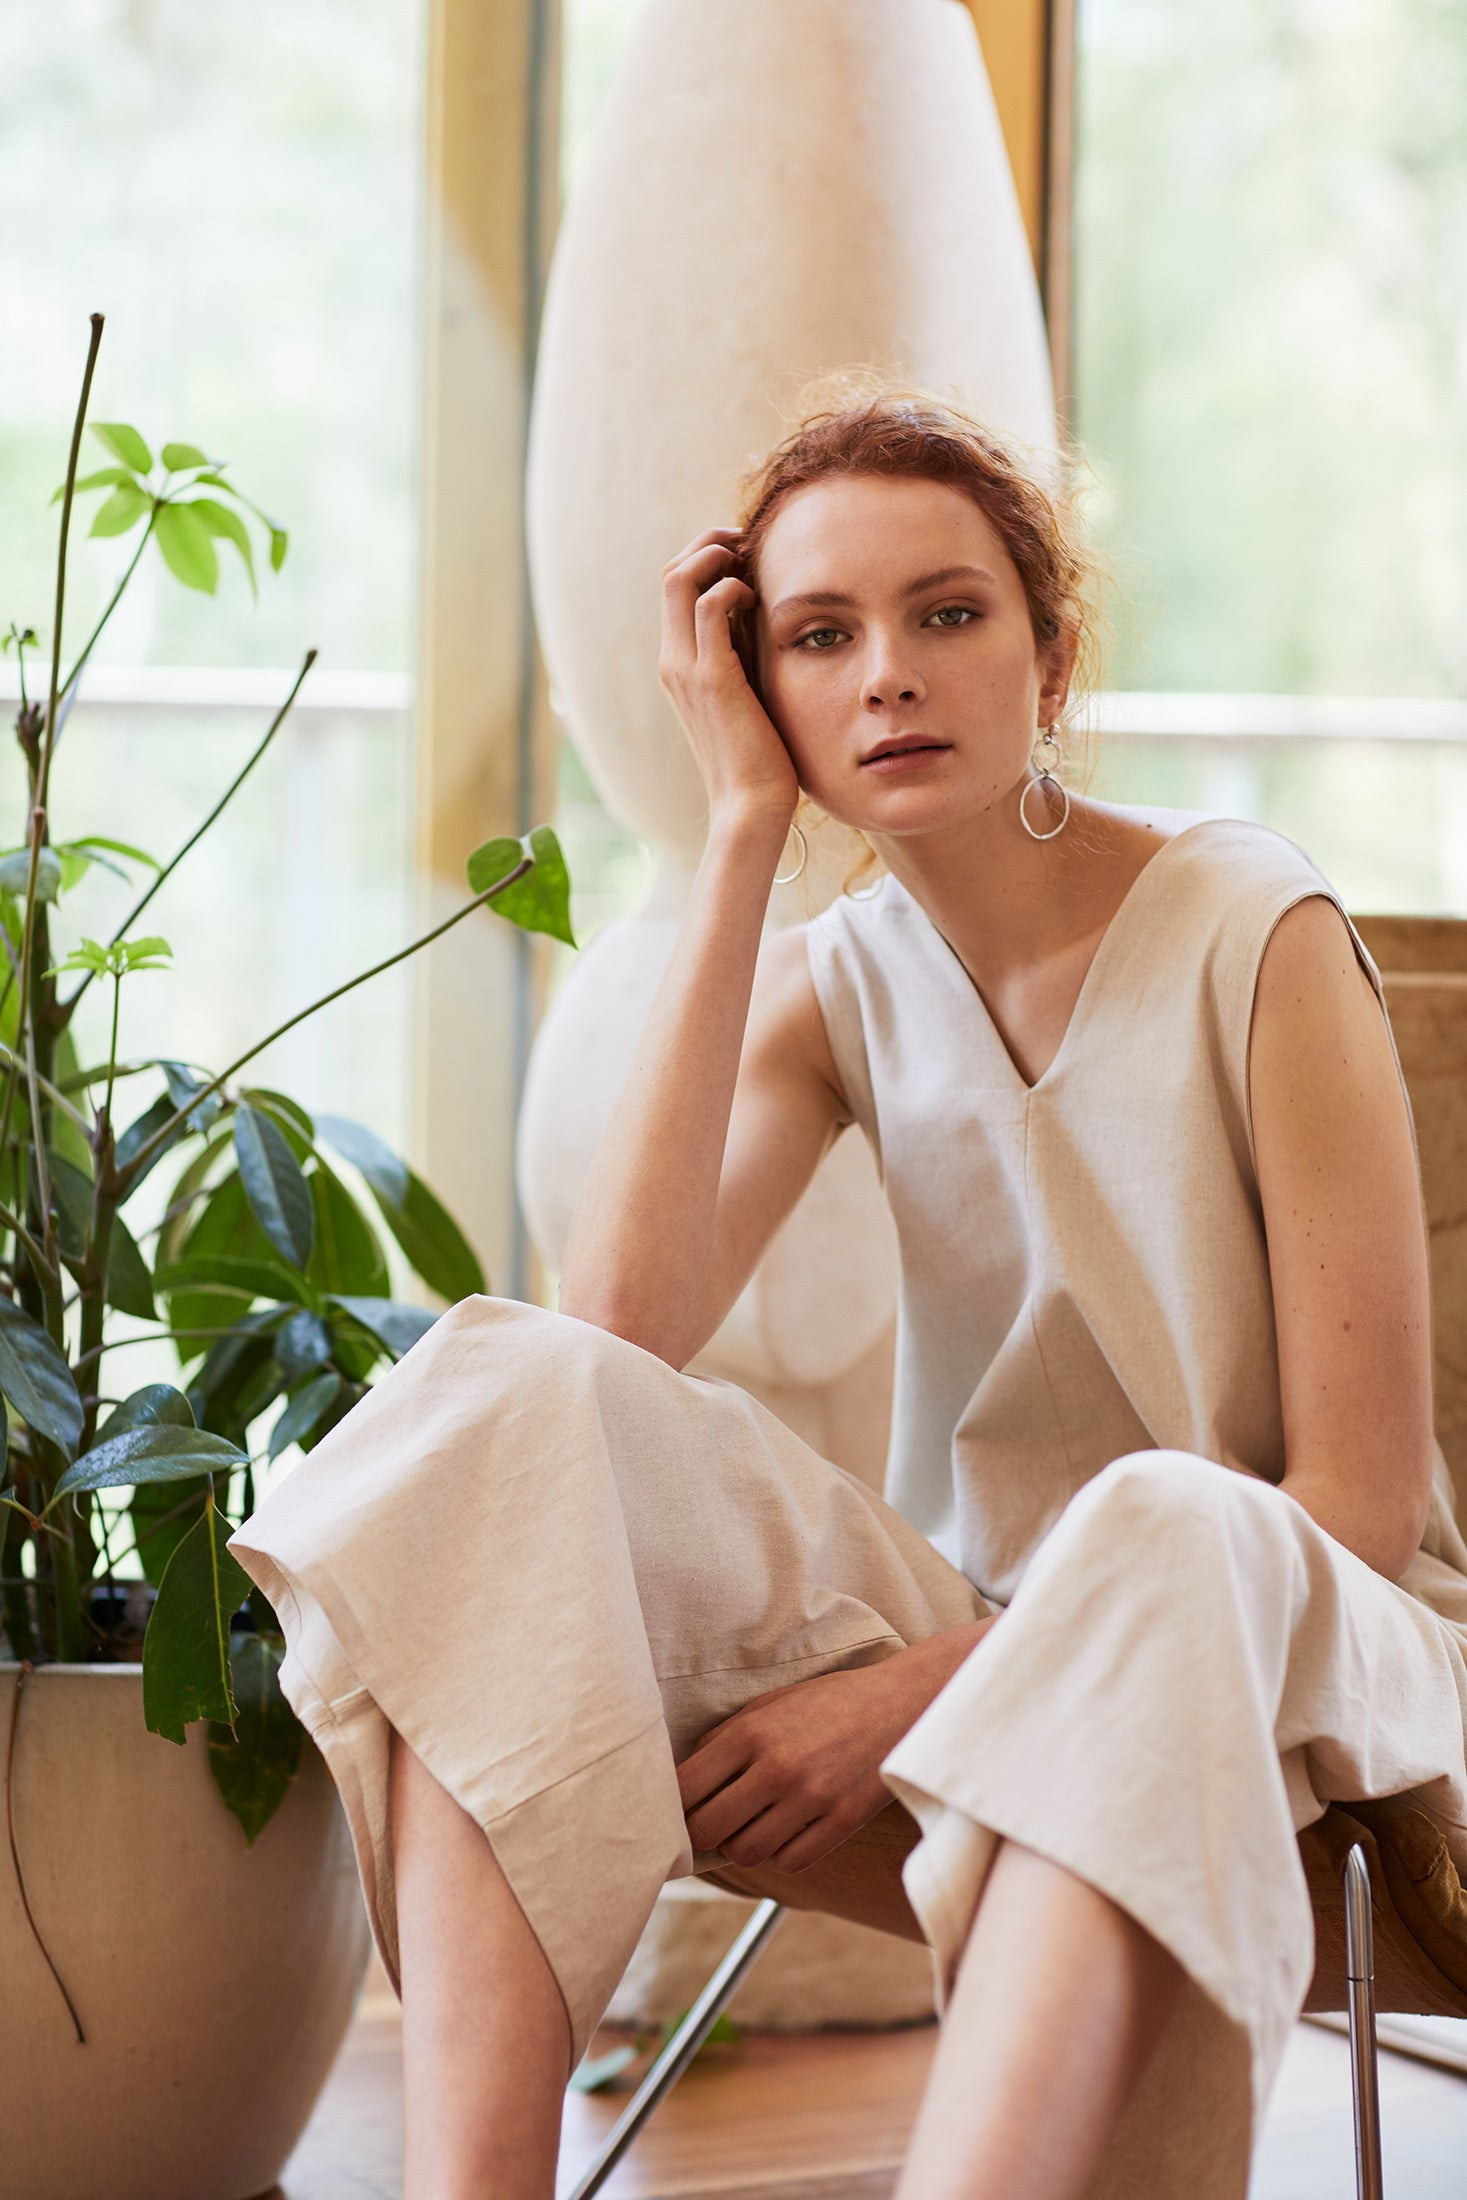 keegan AW19 Woodland Campaign Ethical Fashion Made in Melbourne Australia Cream Linen Jumpsuit